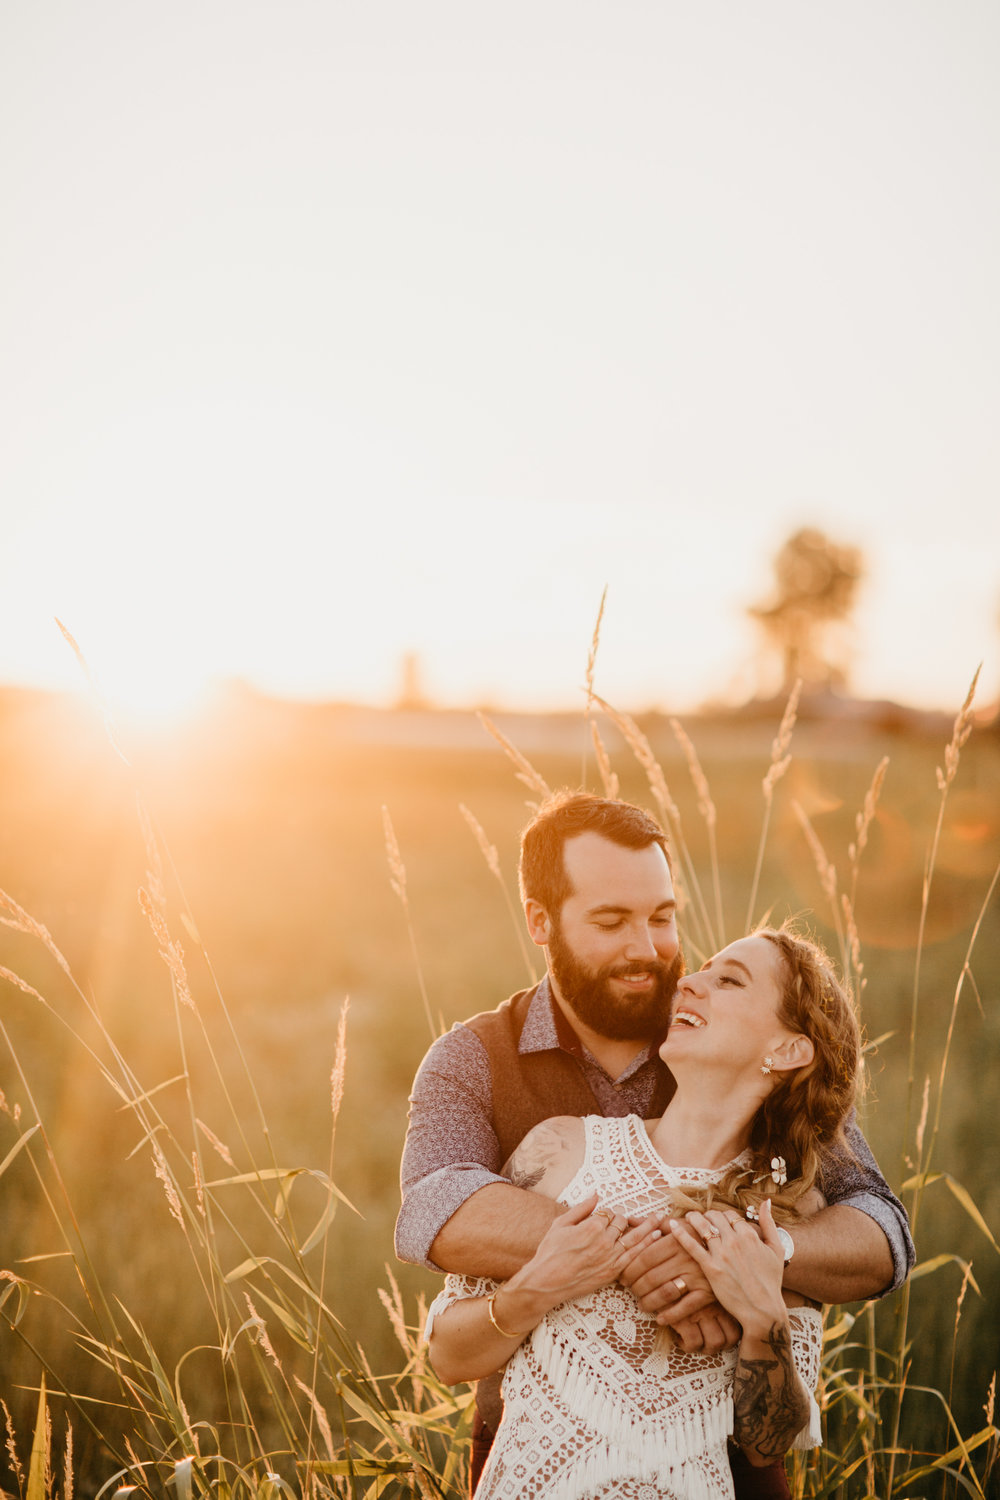 Max&SamPhoto_Seattle Wedding Photographer_Dairyland_25.jpg